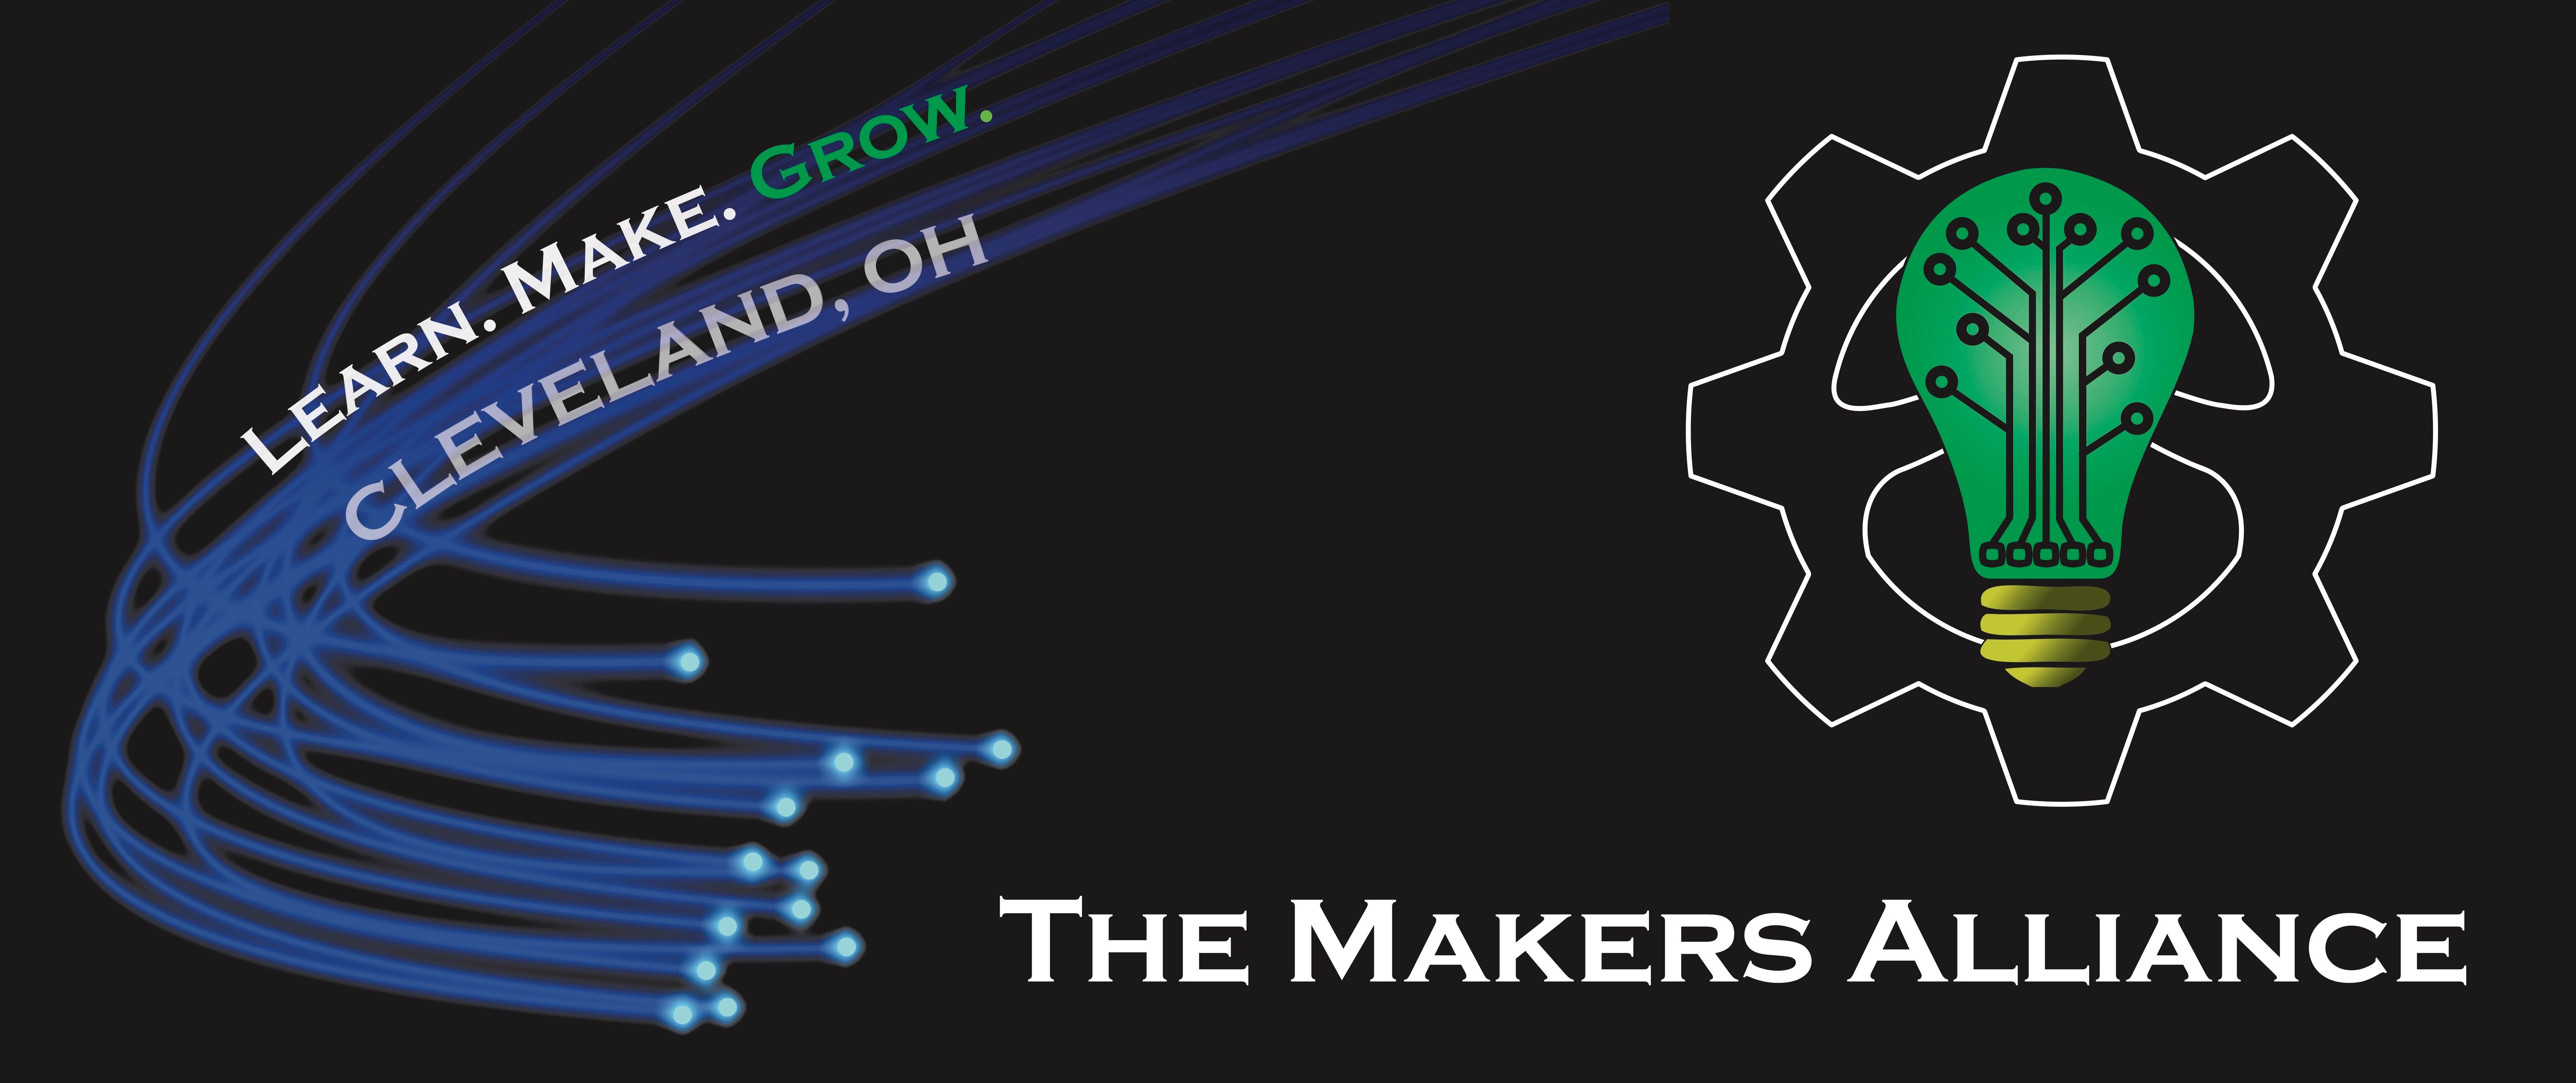 Cleveland Makers Alliance - Learn. Make. Grow.